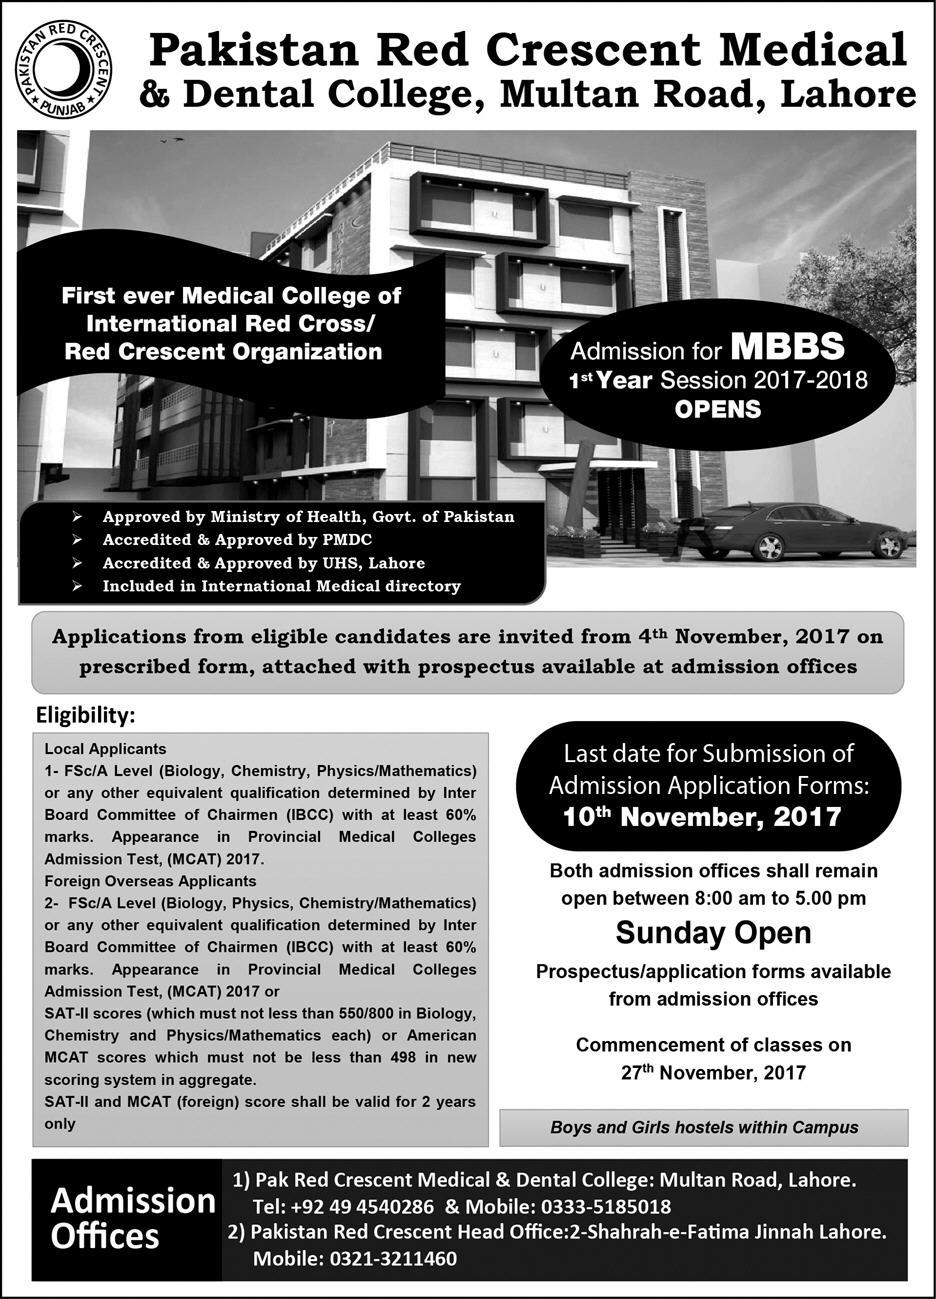 Pakistan Red Crescent Medical & Dental College, Lahore (MBBS) Admissions 2017 – 18